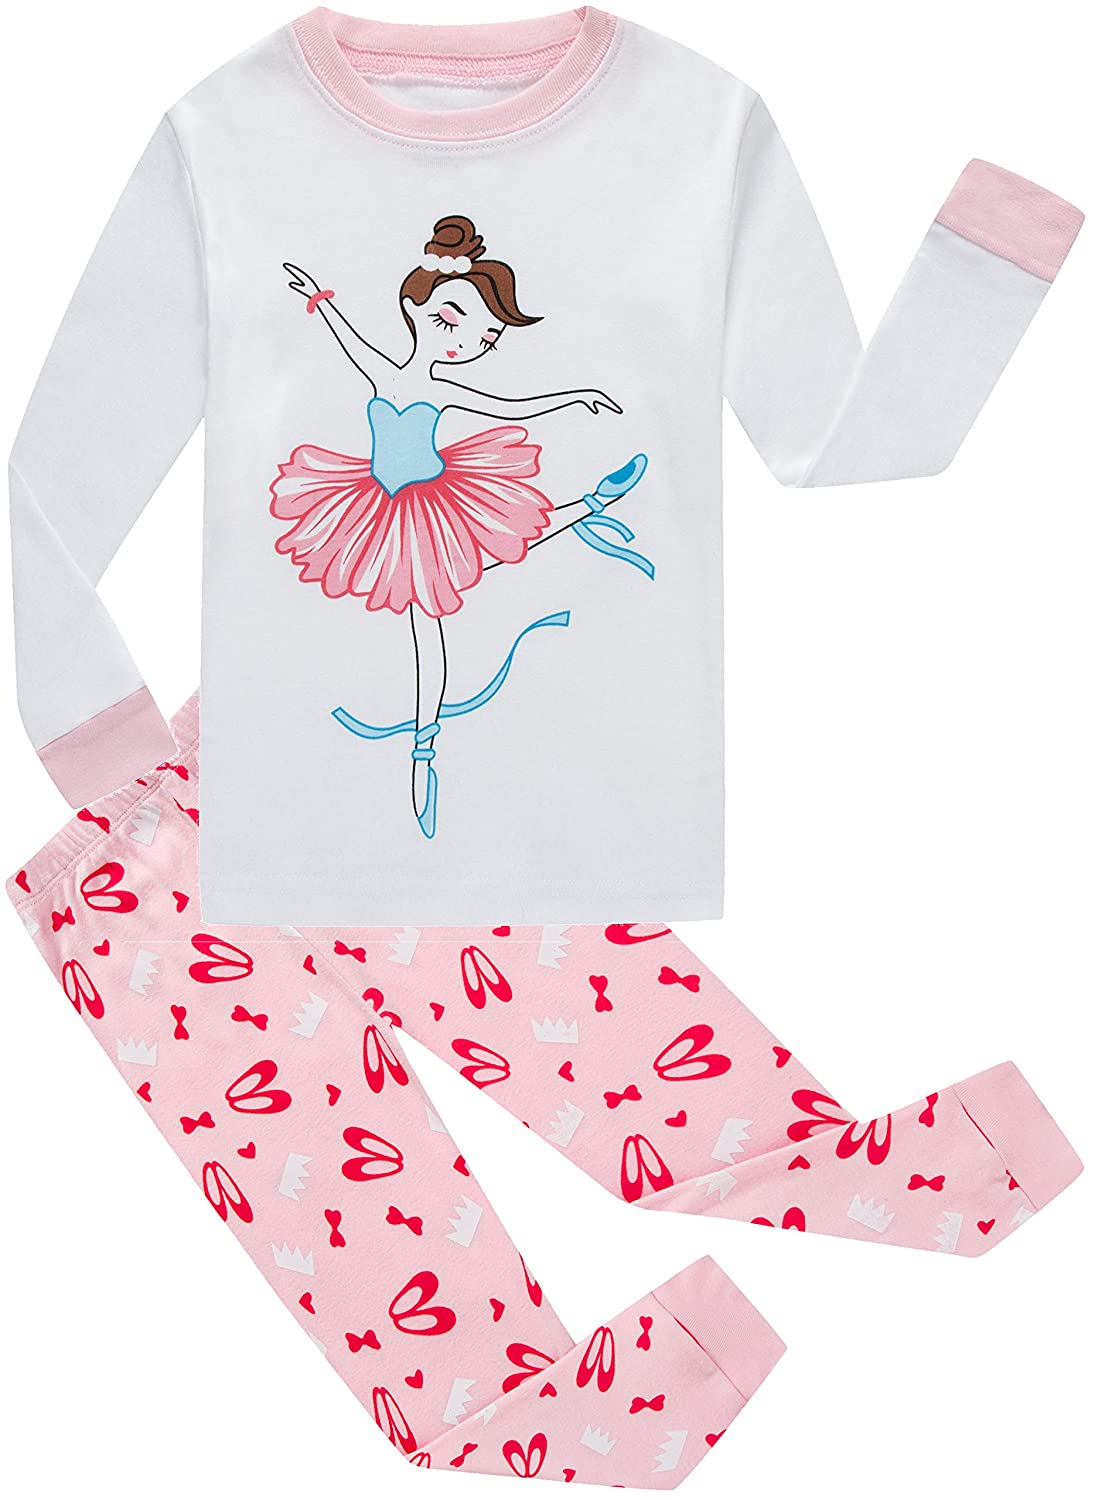 Little Girls Pajamas Christmas Cotton Clothes Gift Children Sleepwear Kids PJS Shirt Pants Set